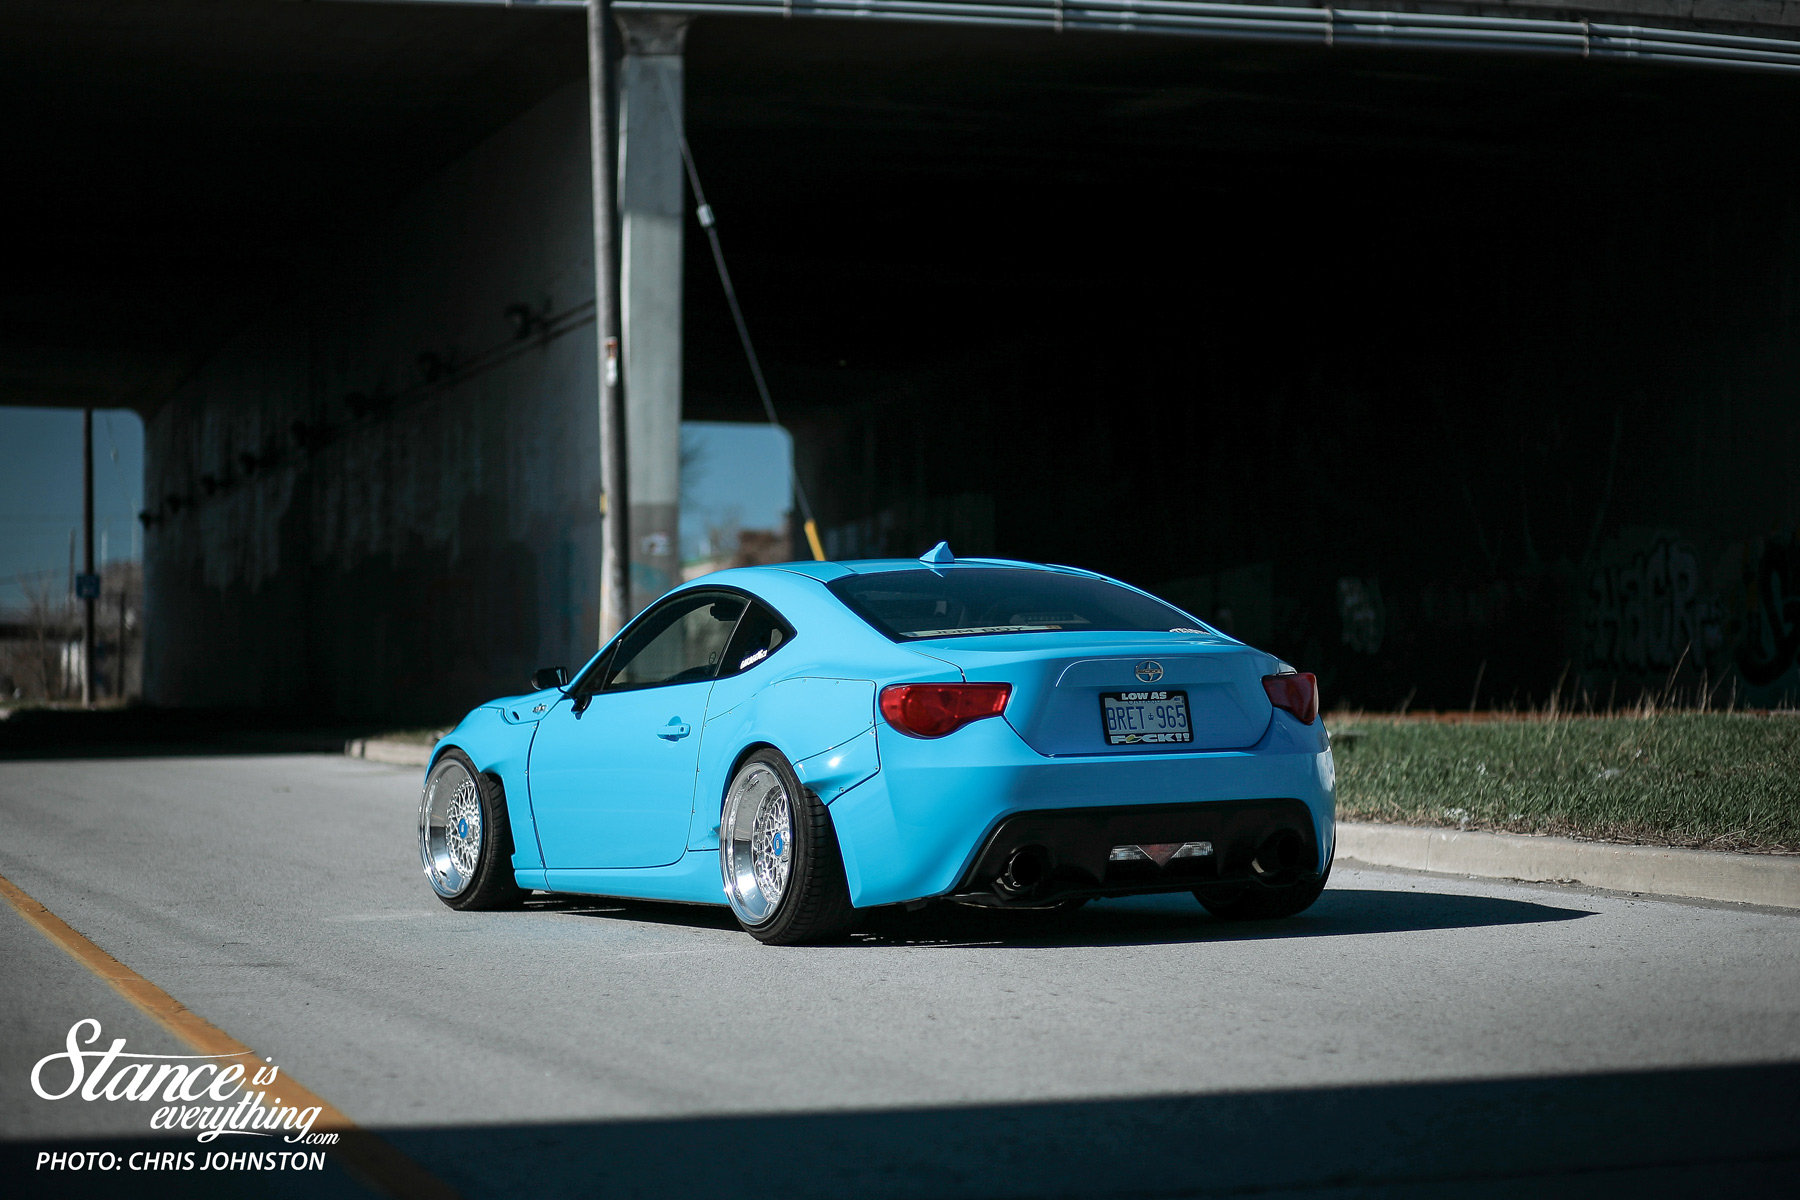 rocket-bunny-frs-bbs-cyrious-garage-bryan-costa-9